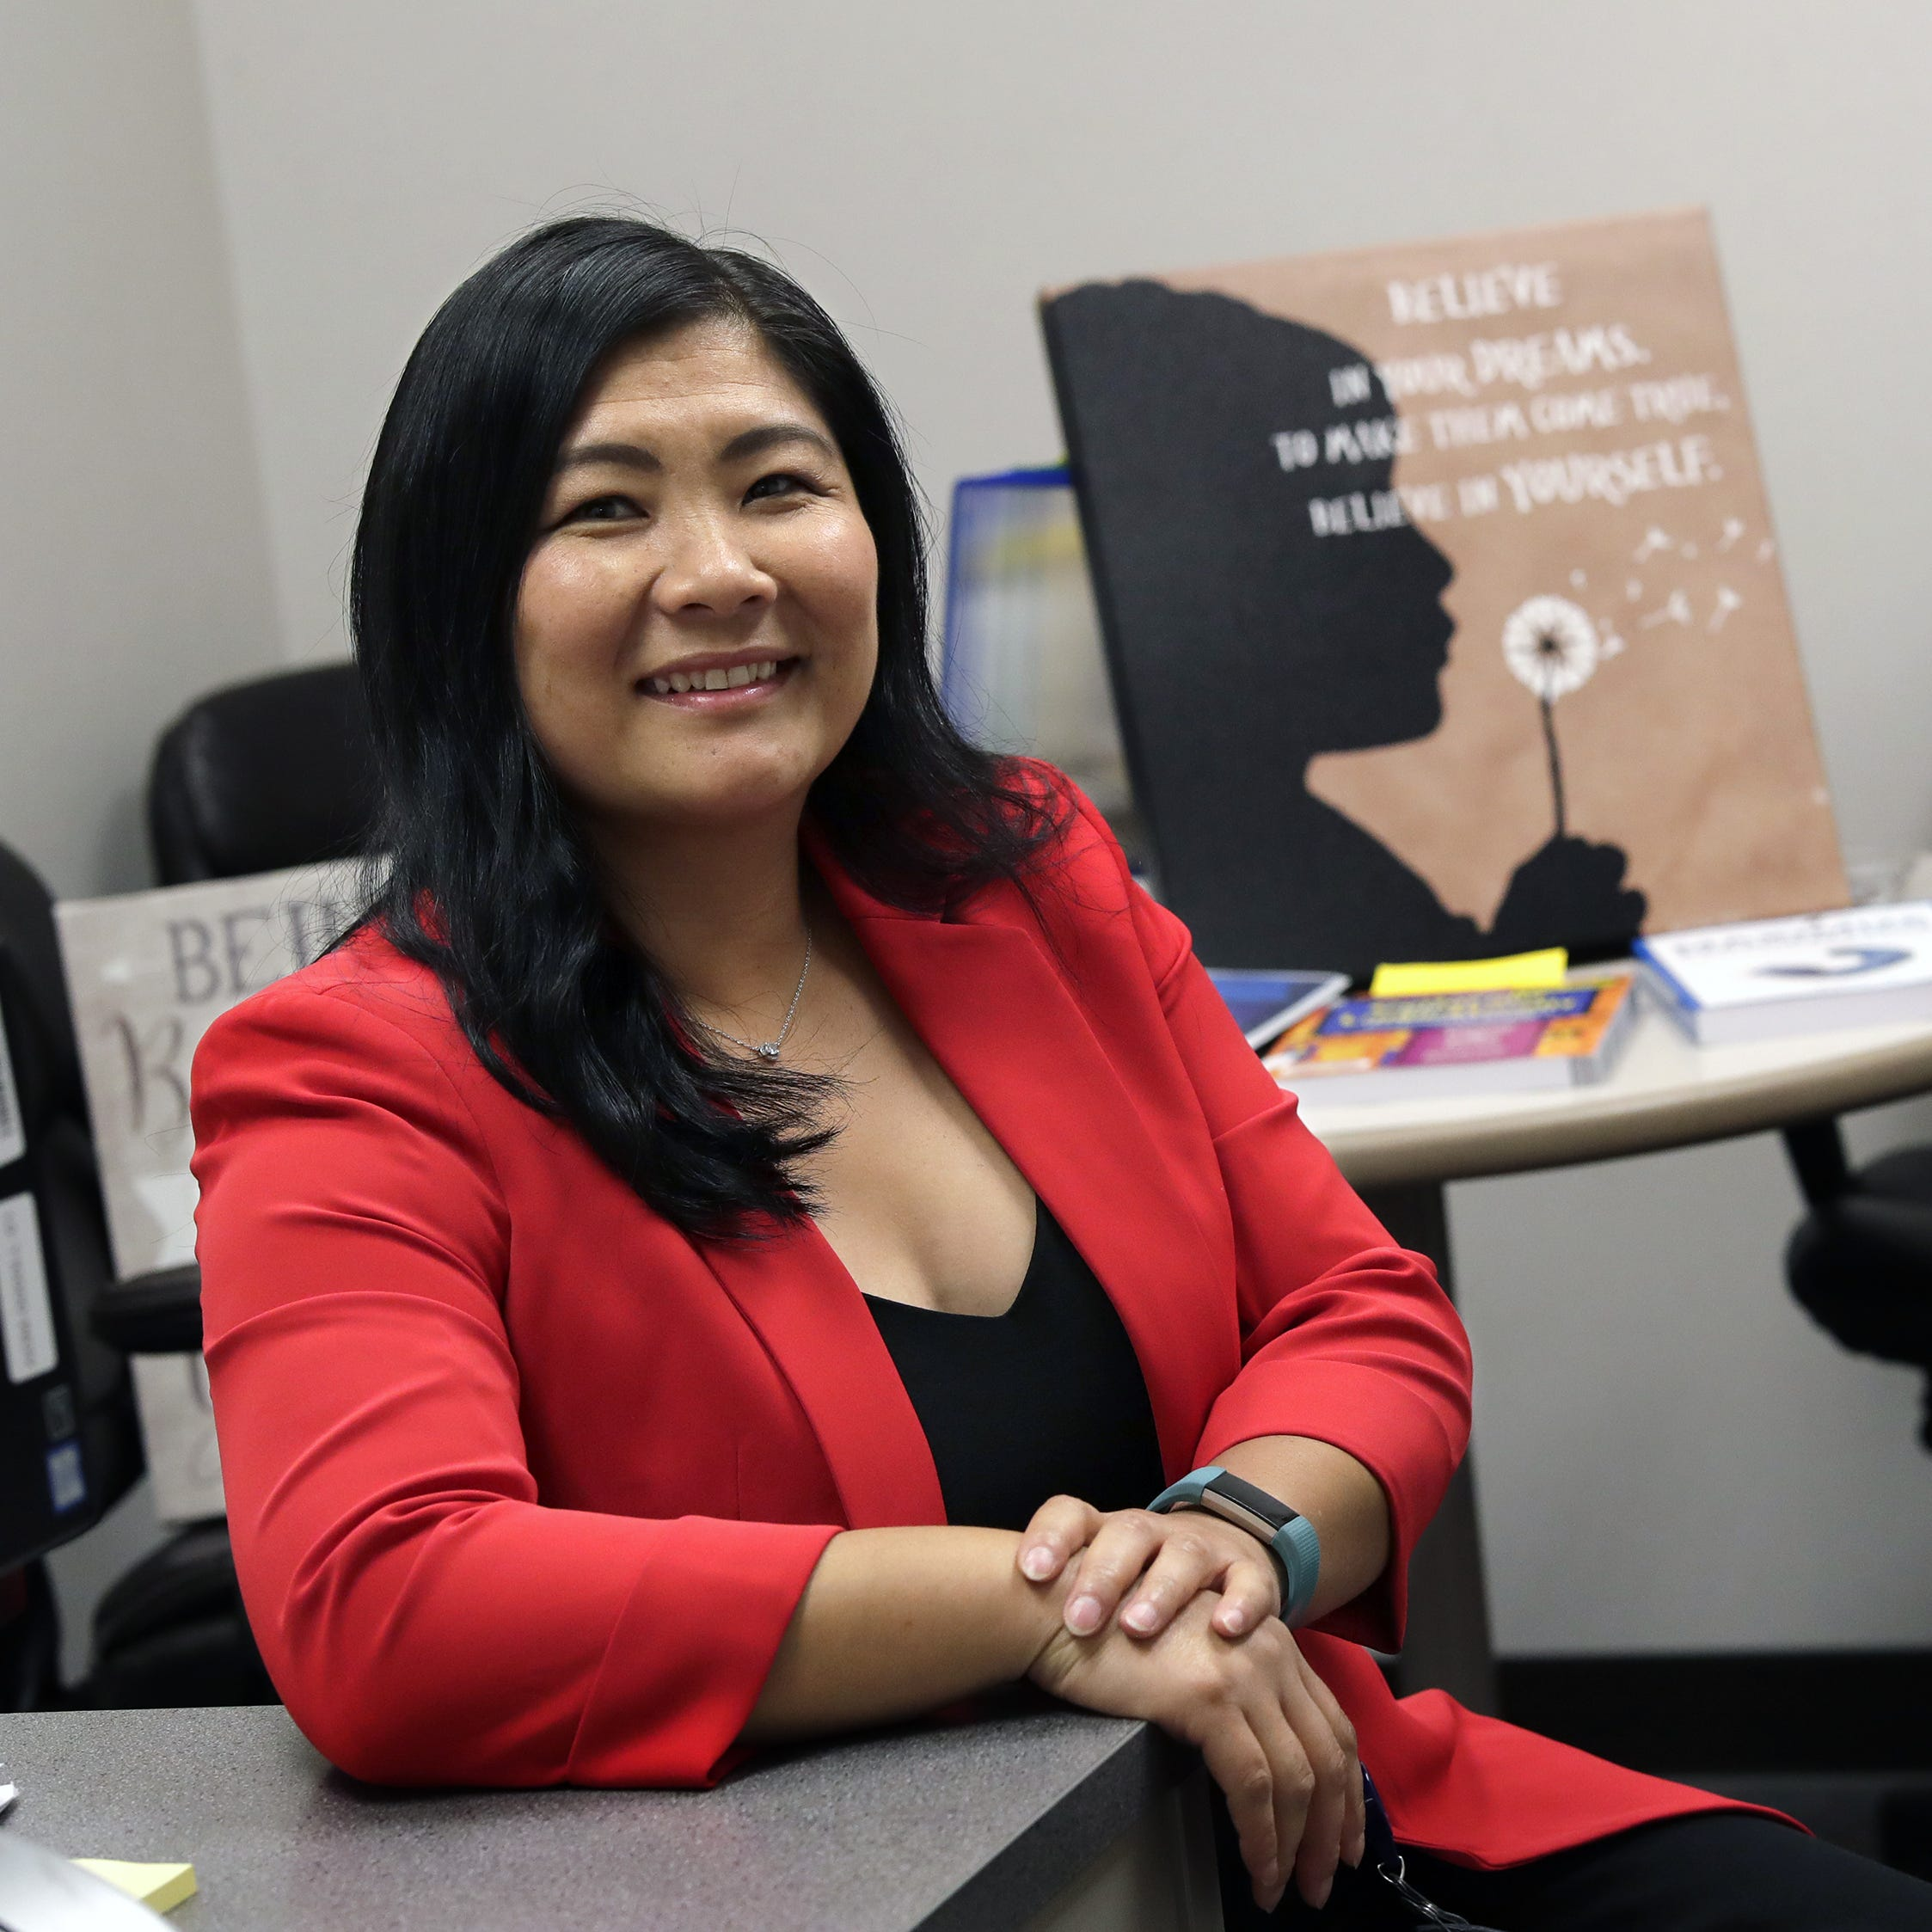 Pa Lee Moua is the new diversity, equity and inclusion officer with the Appleton Area School District. She is seen here in her new office Tuesday, Sept. 18, 2018, at City Center East in Appleton, Wis.  Dan Powers/USA TODAY NETWORK-Wisconsin